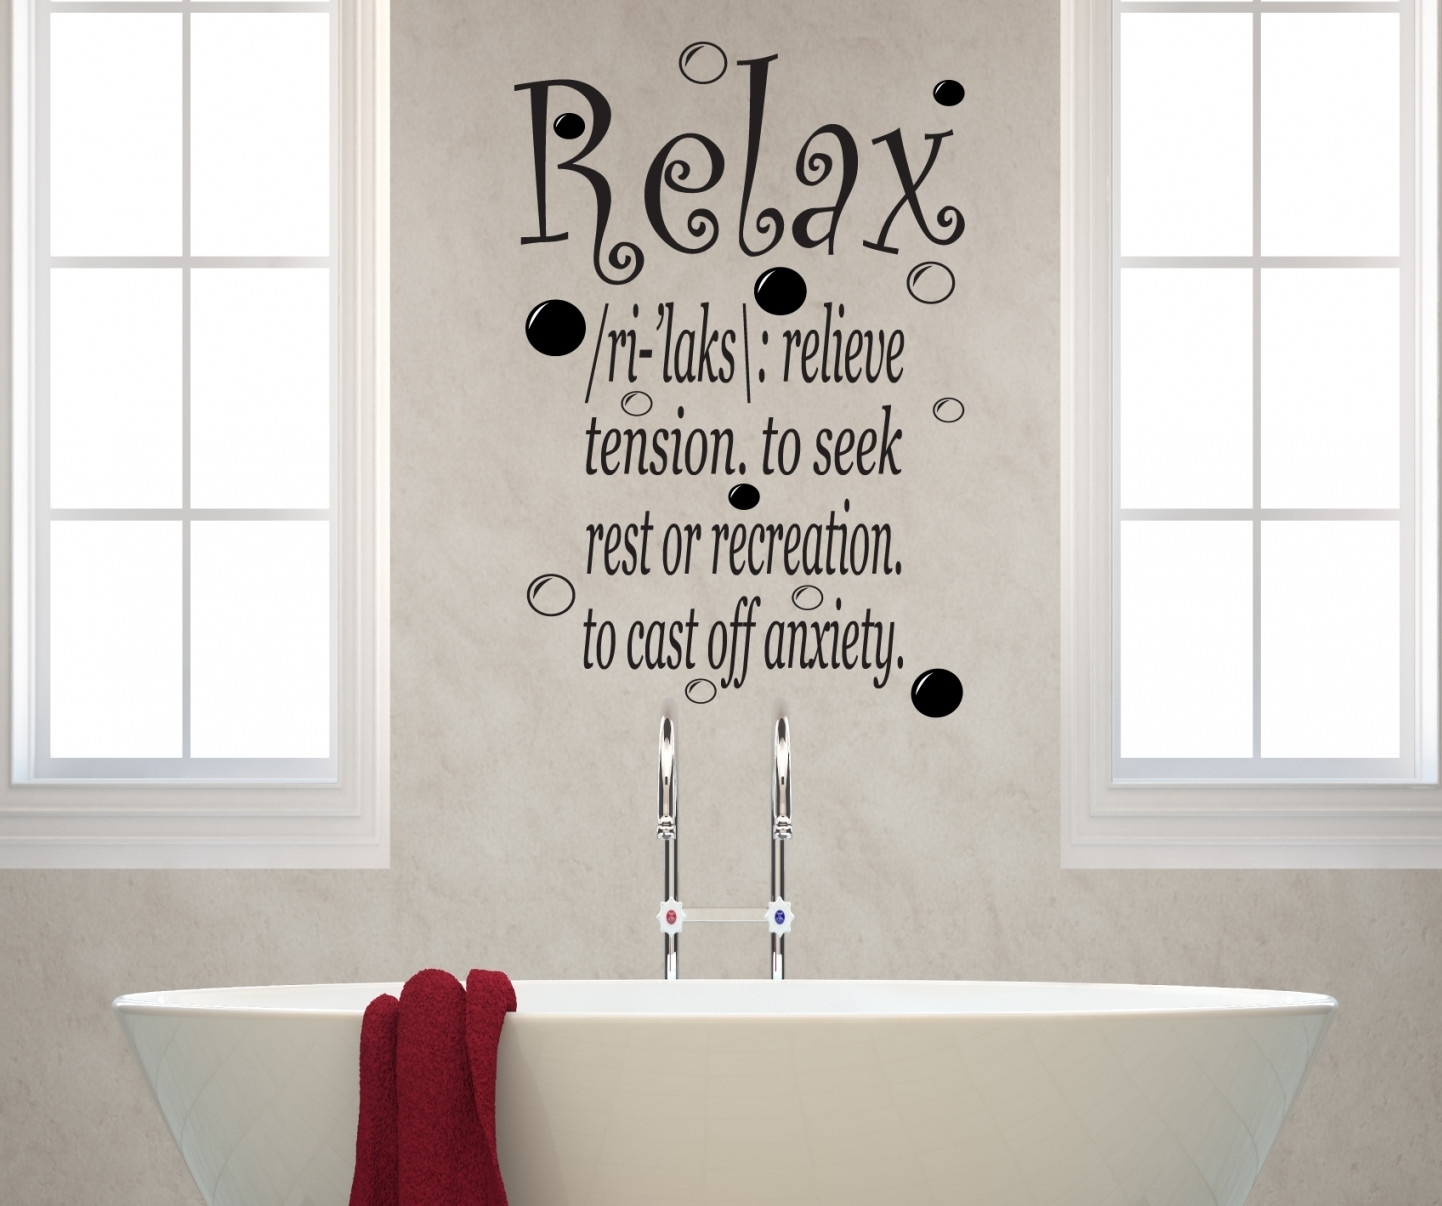 Luxury Relax Wall Art Images – Hypermallapartments In Recent Relax Wall Art (View 6 of 20)